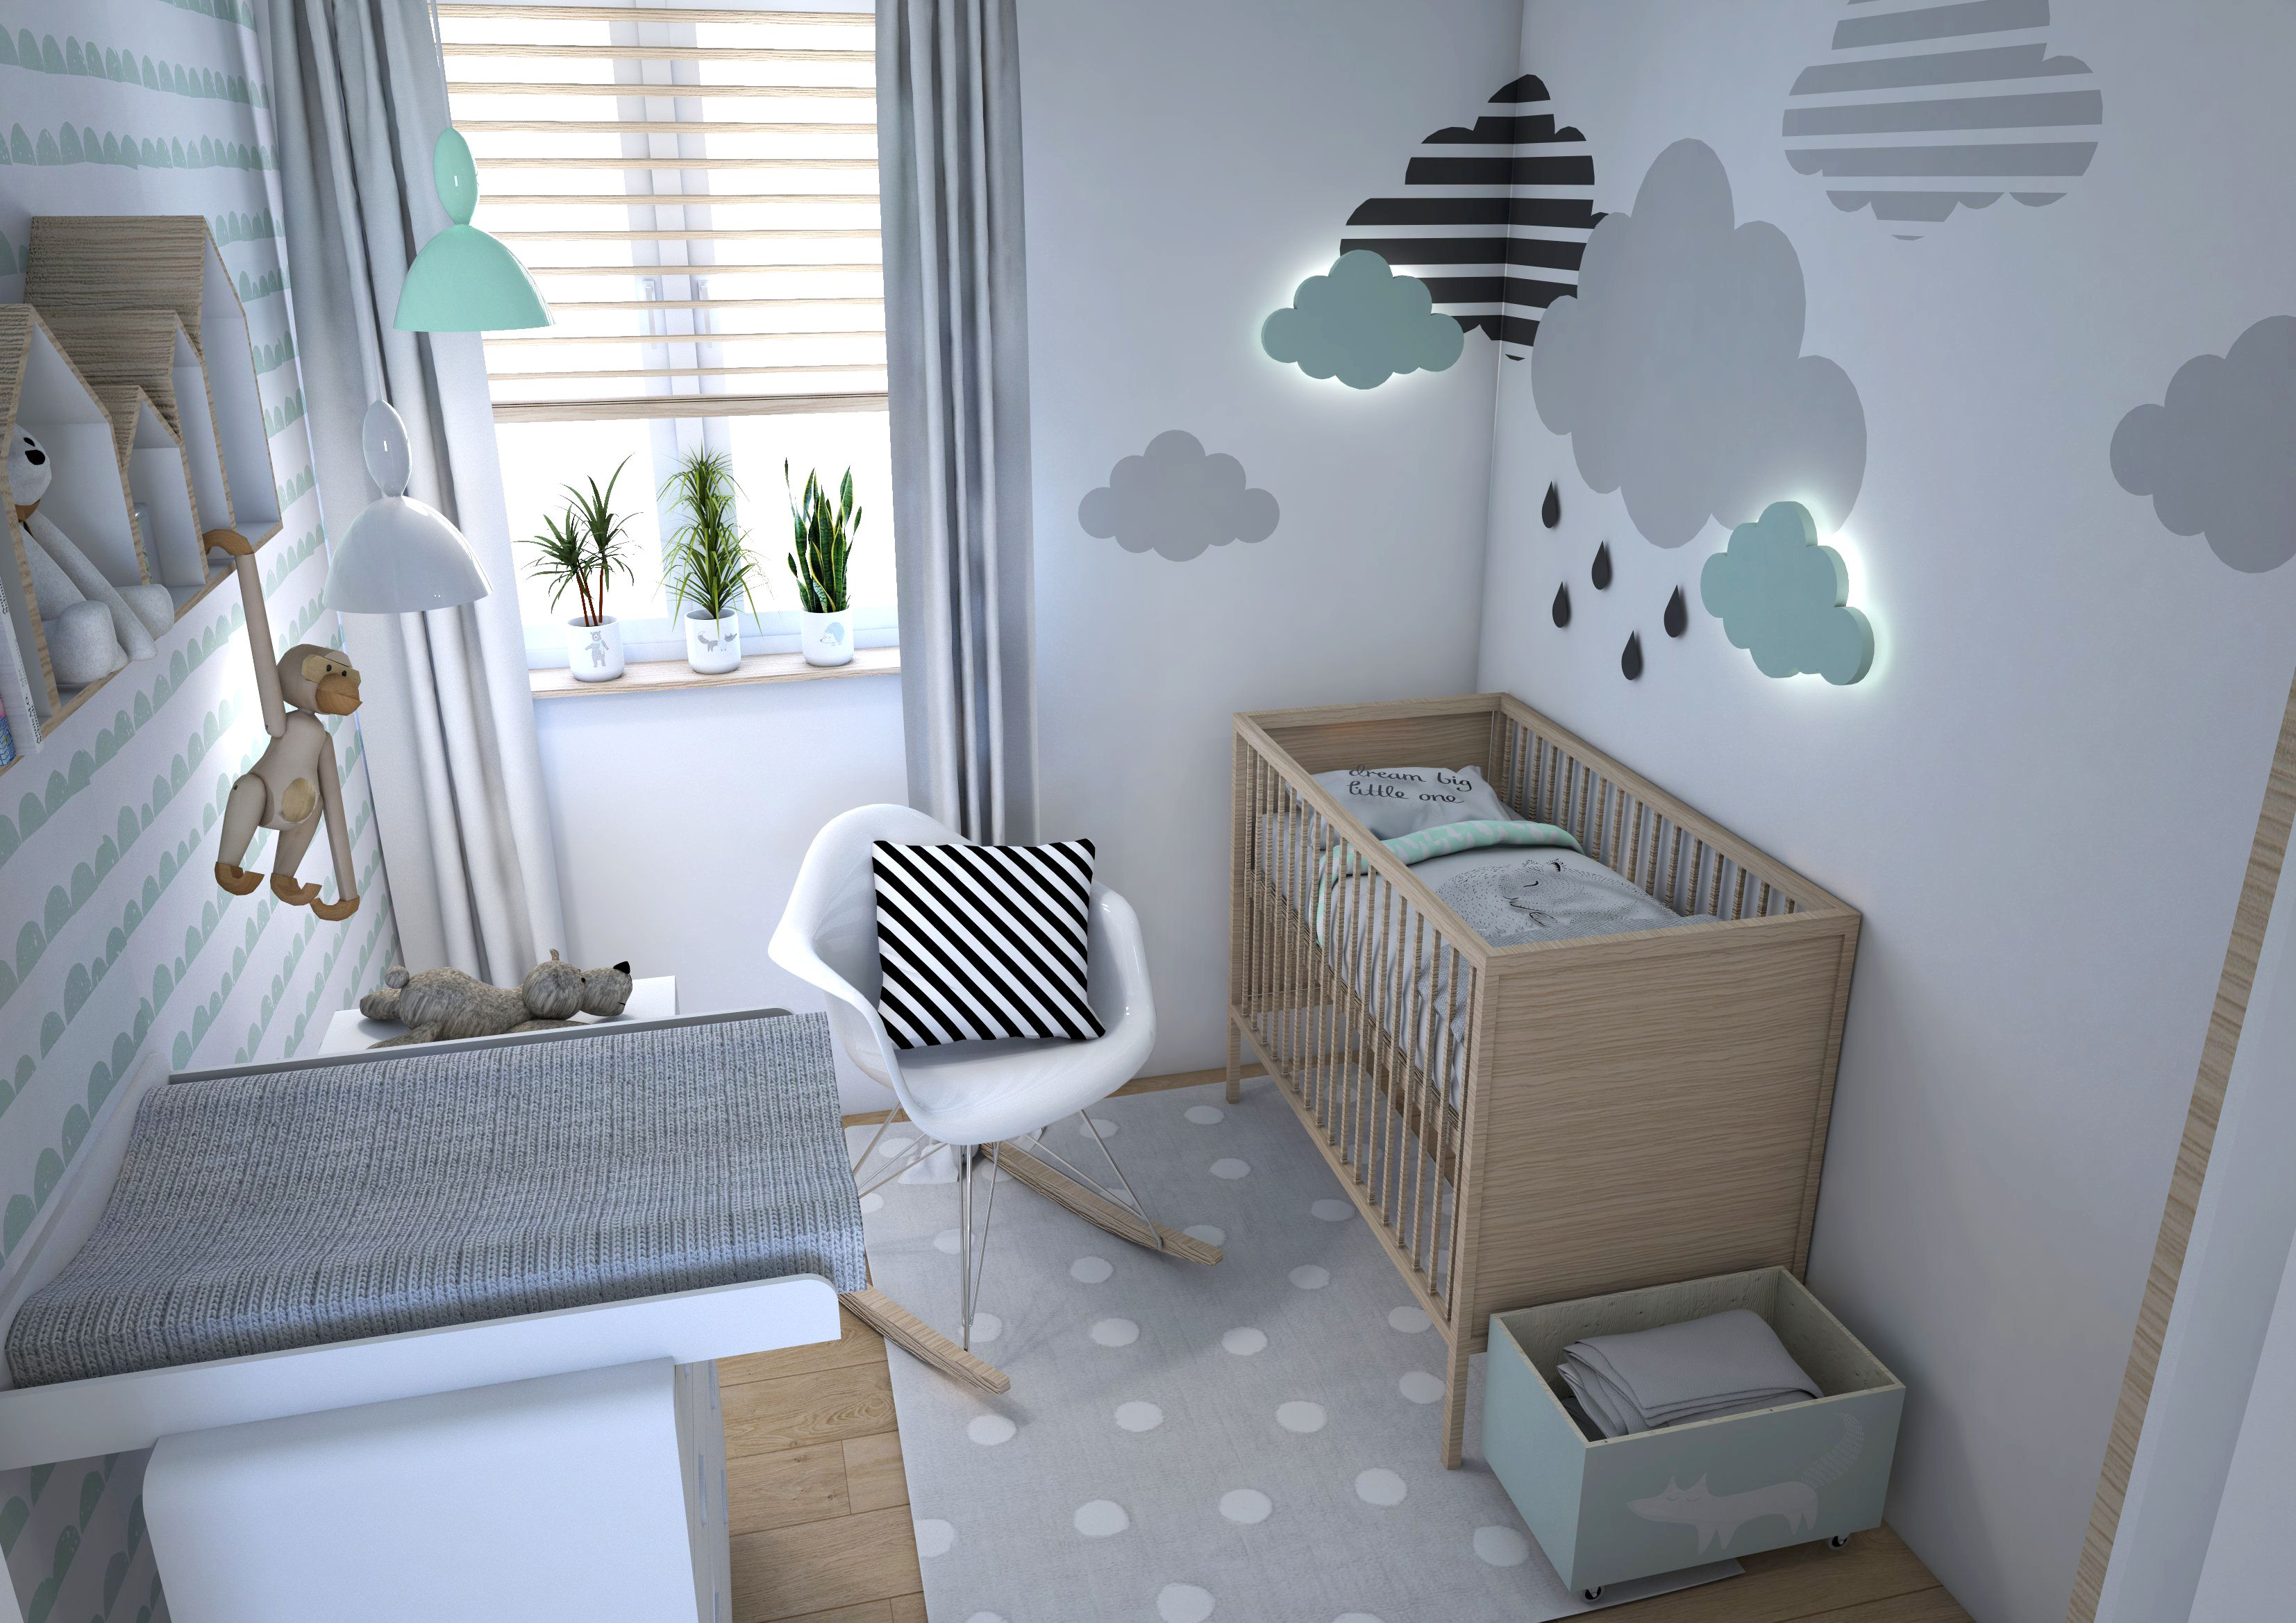 So nice jollyroom nursery pinterest babyzimmer for Babyzimmer kinderzimmer